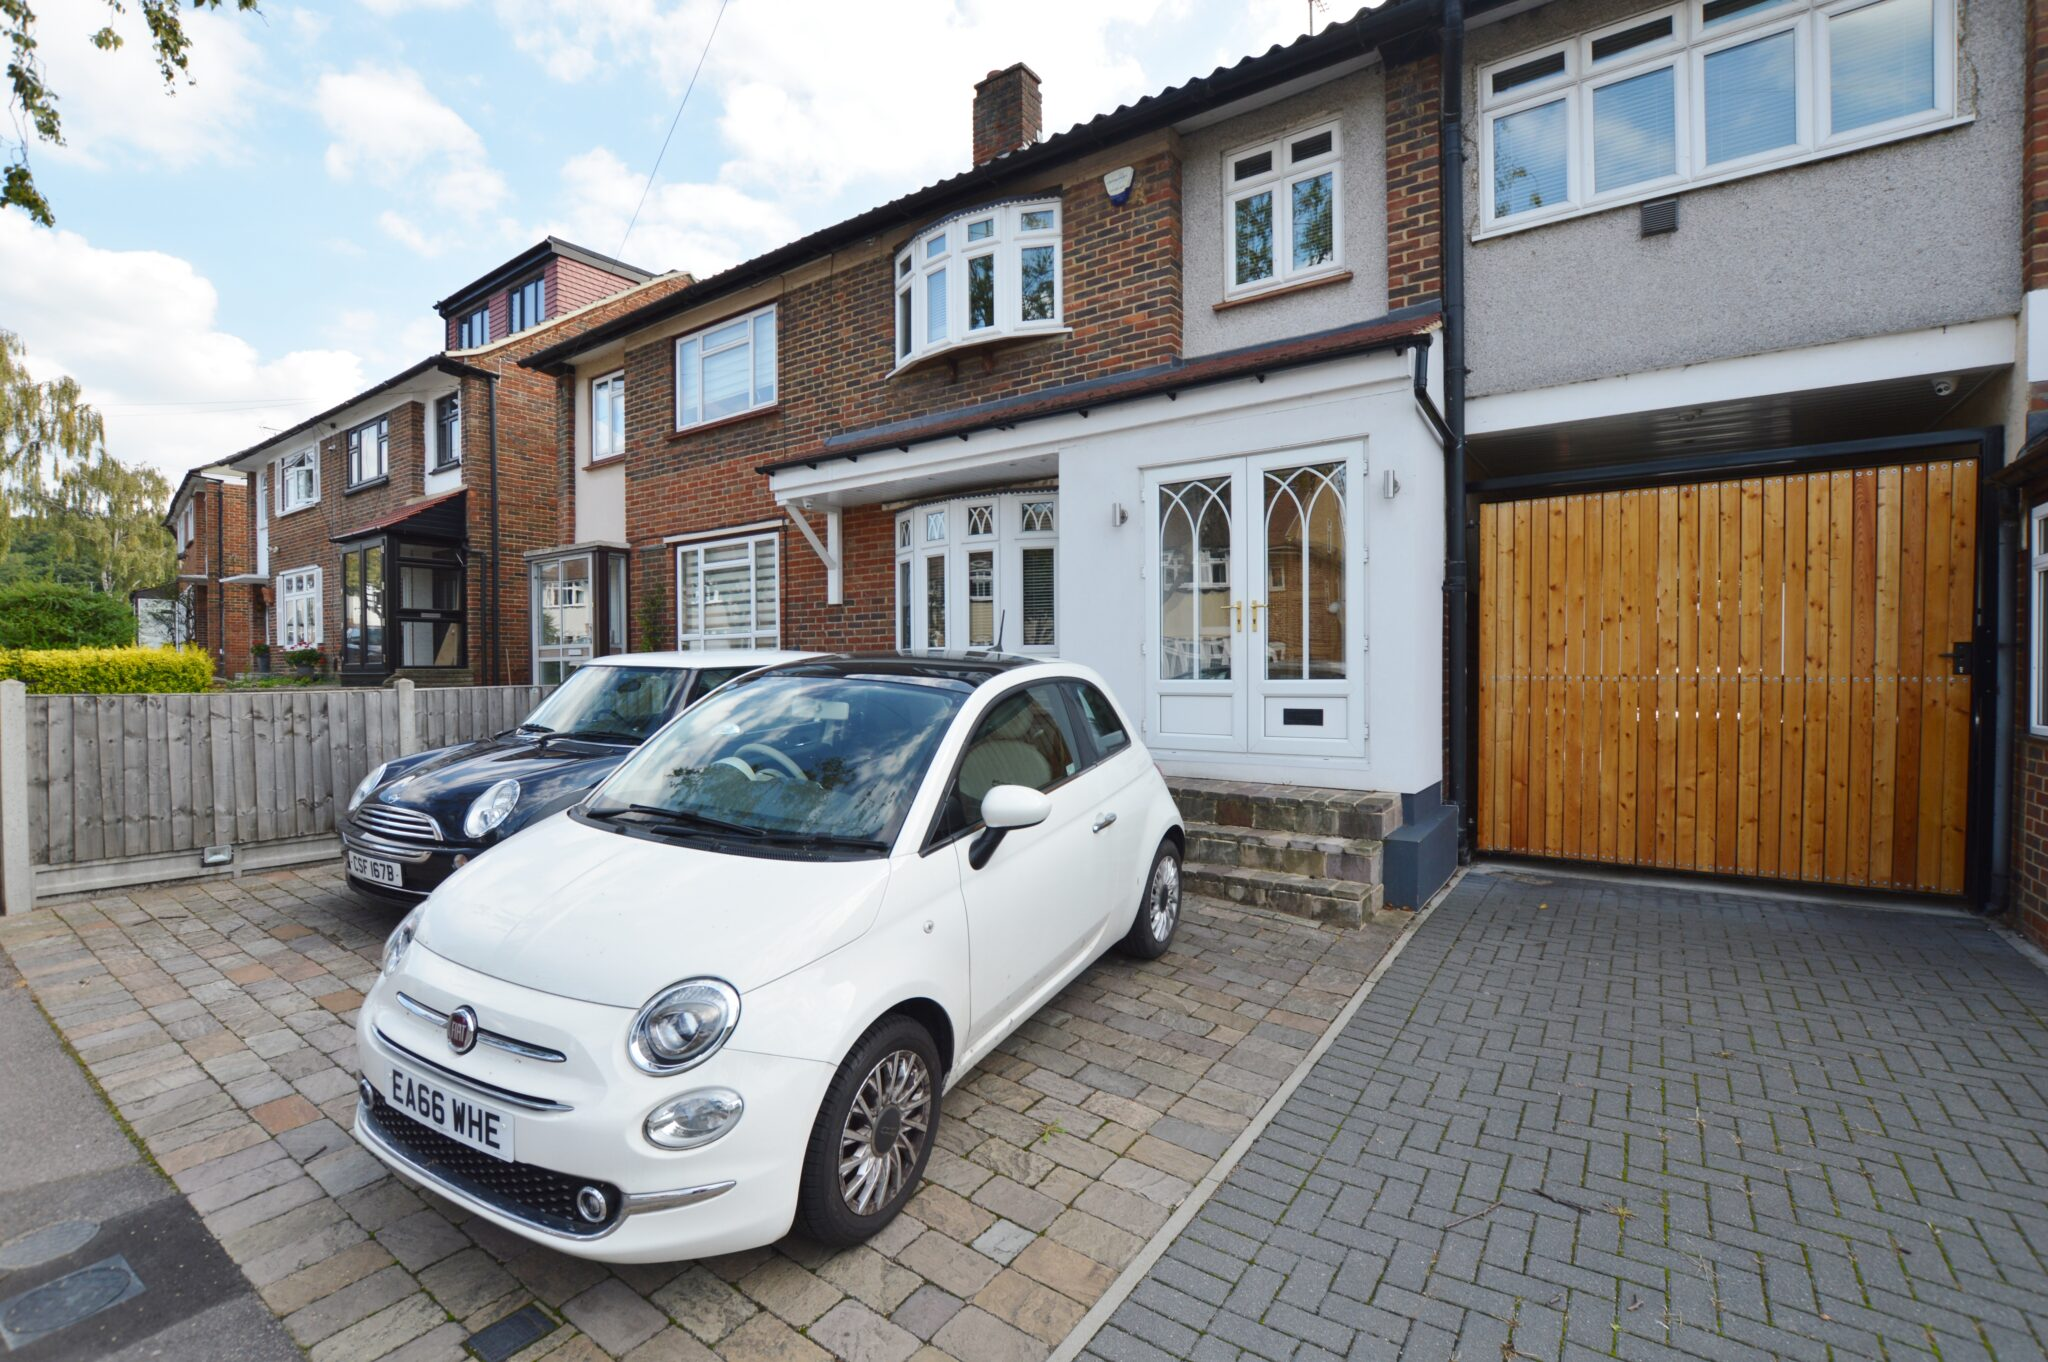 Hawkwood Crescent, North Chingford, London, E4 7PJ